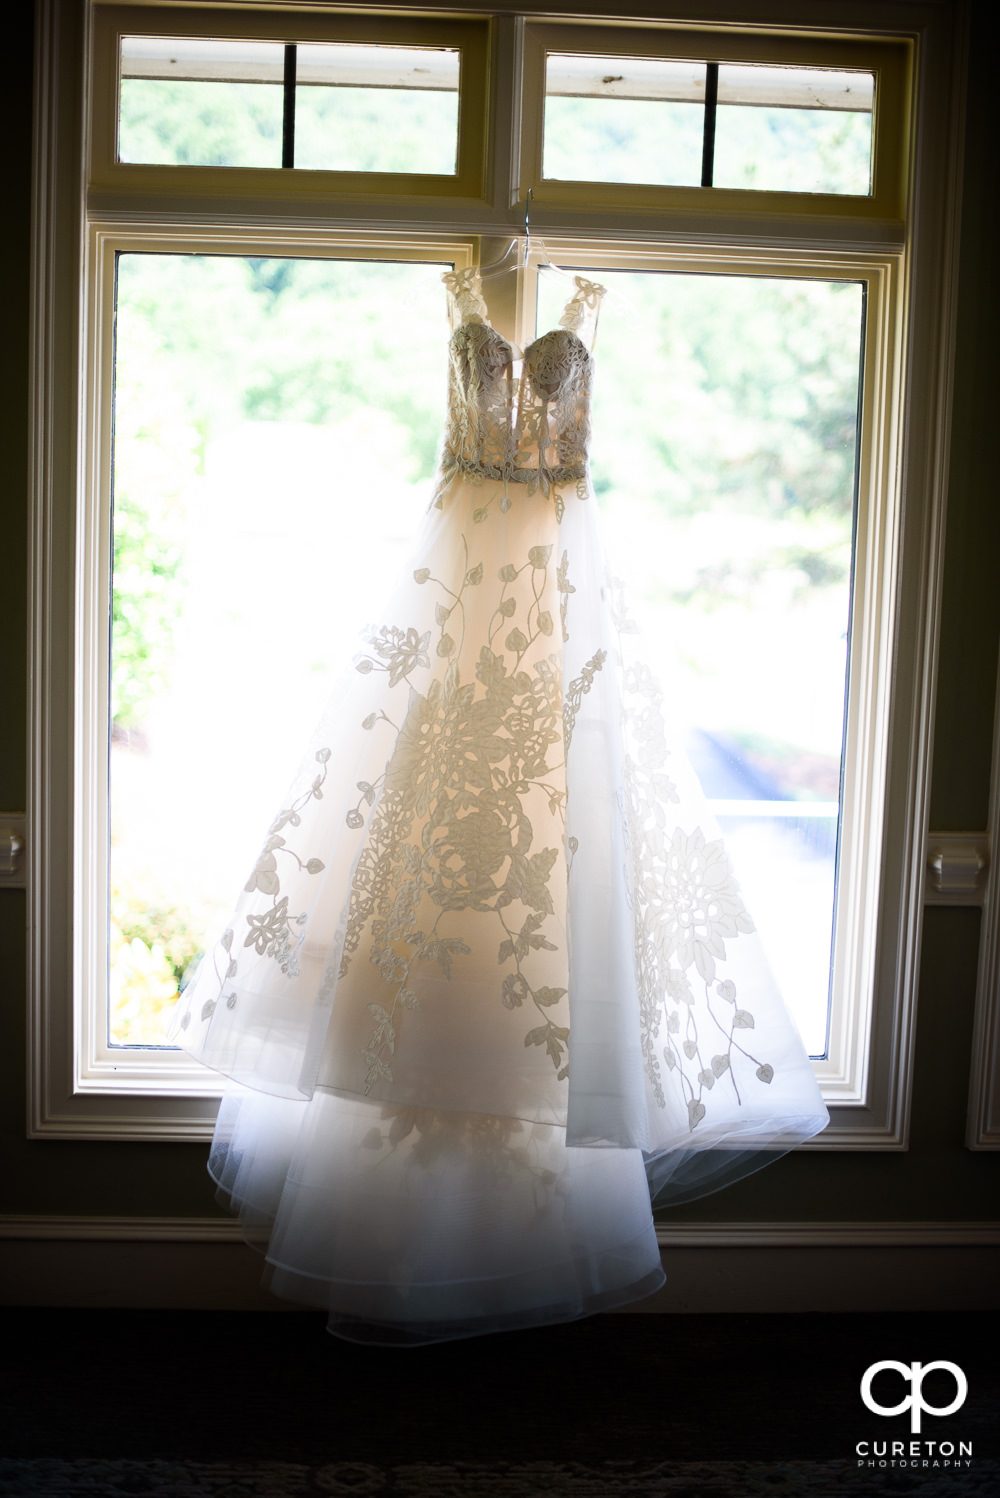 Bride's dress hanging in the window.